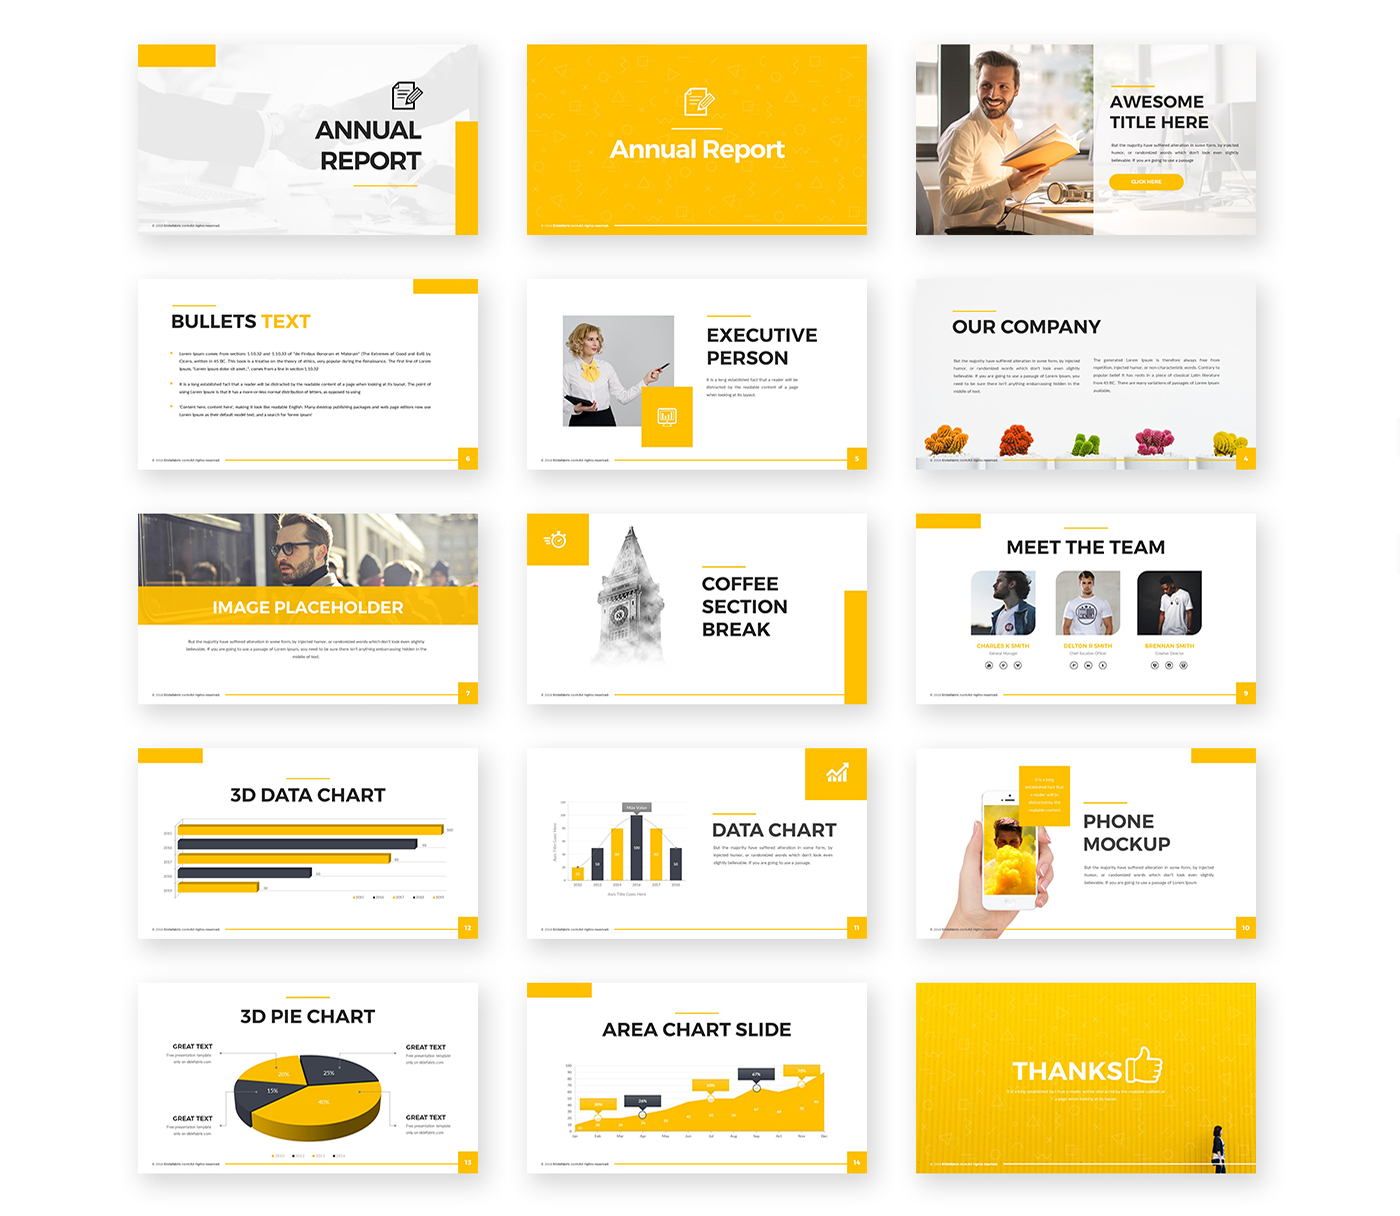 Annual Report Powerpoint Template  Pixelify  Best Free Fonts Intended For Annual Report Ppt Template